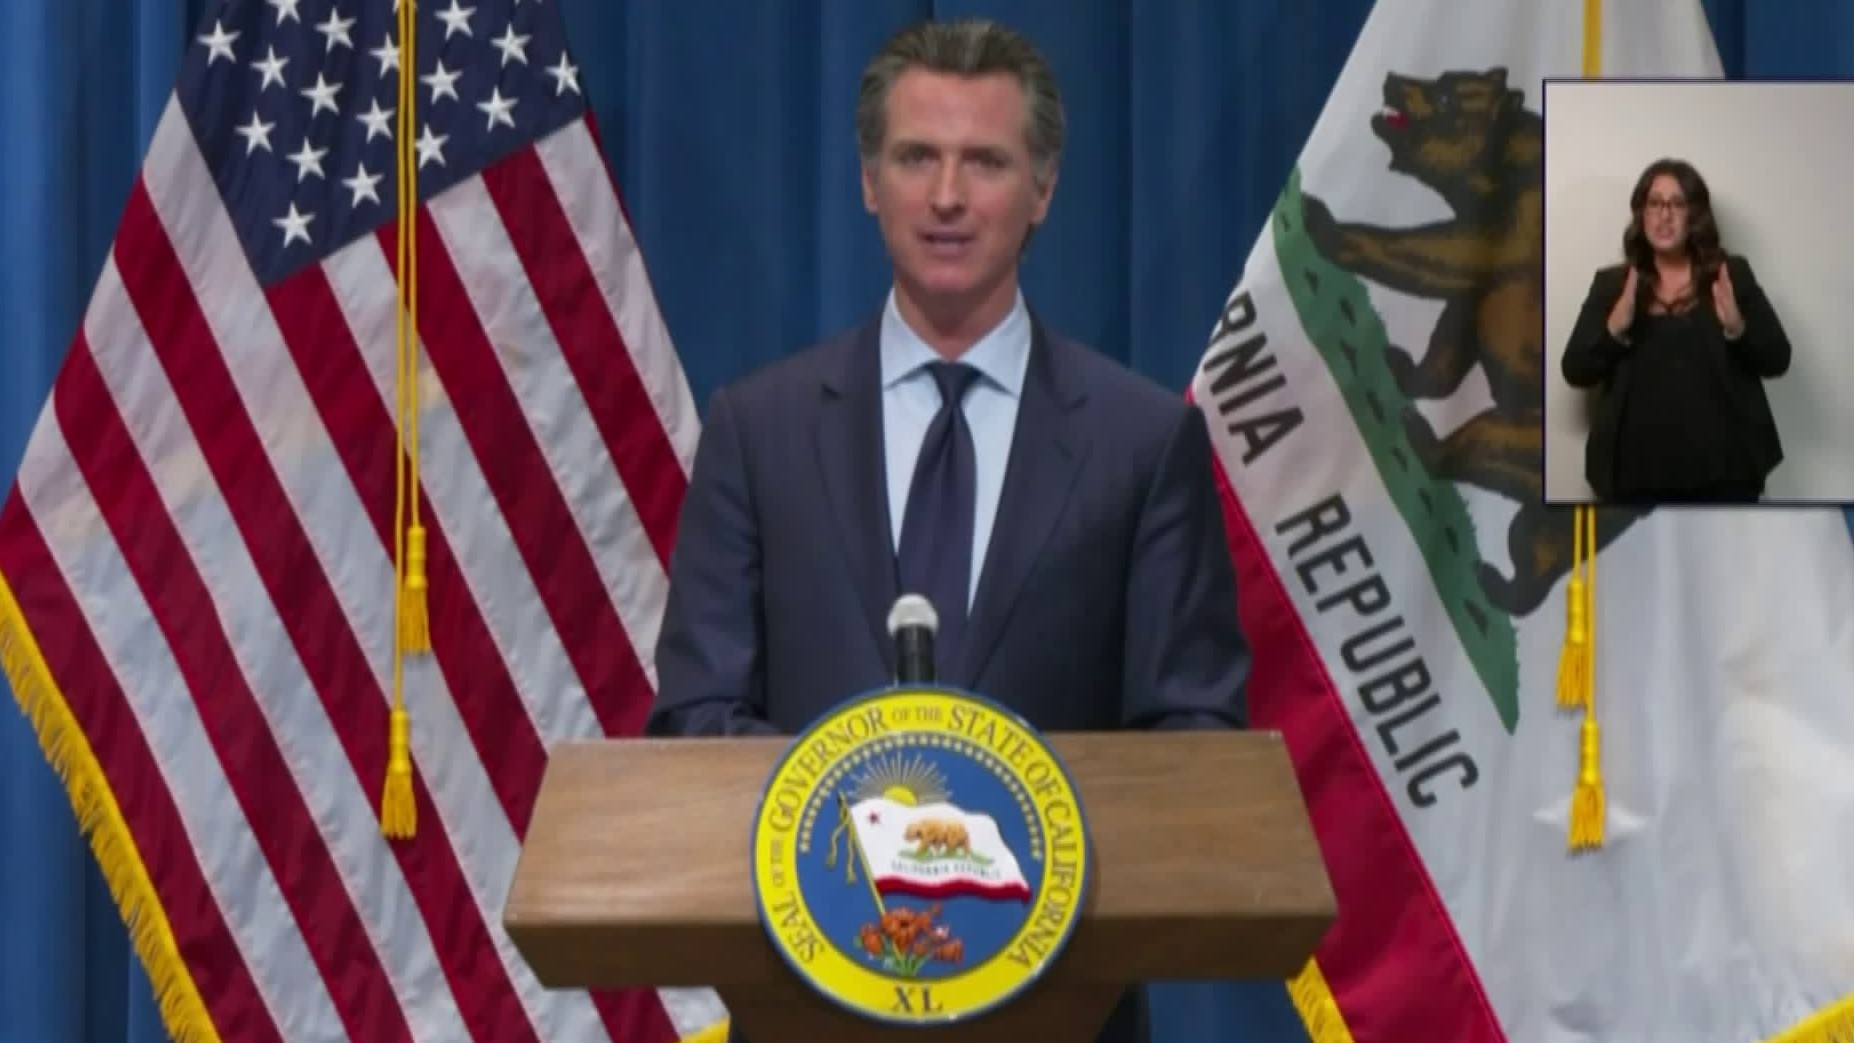 Gov. Newsom unveils his revised budget plan on May 14, 2020. (Pool)